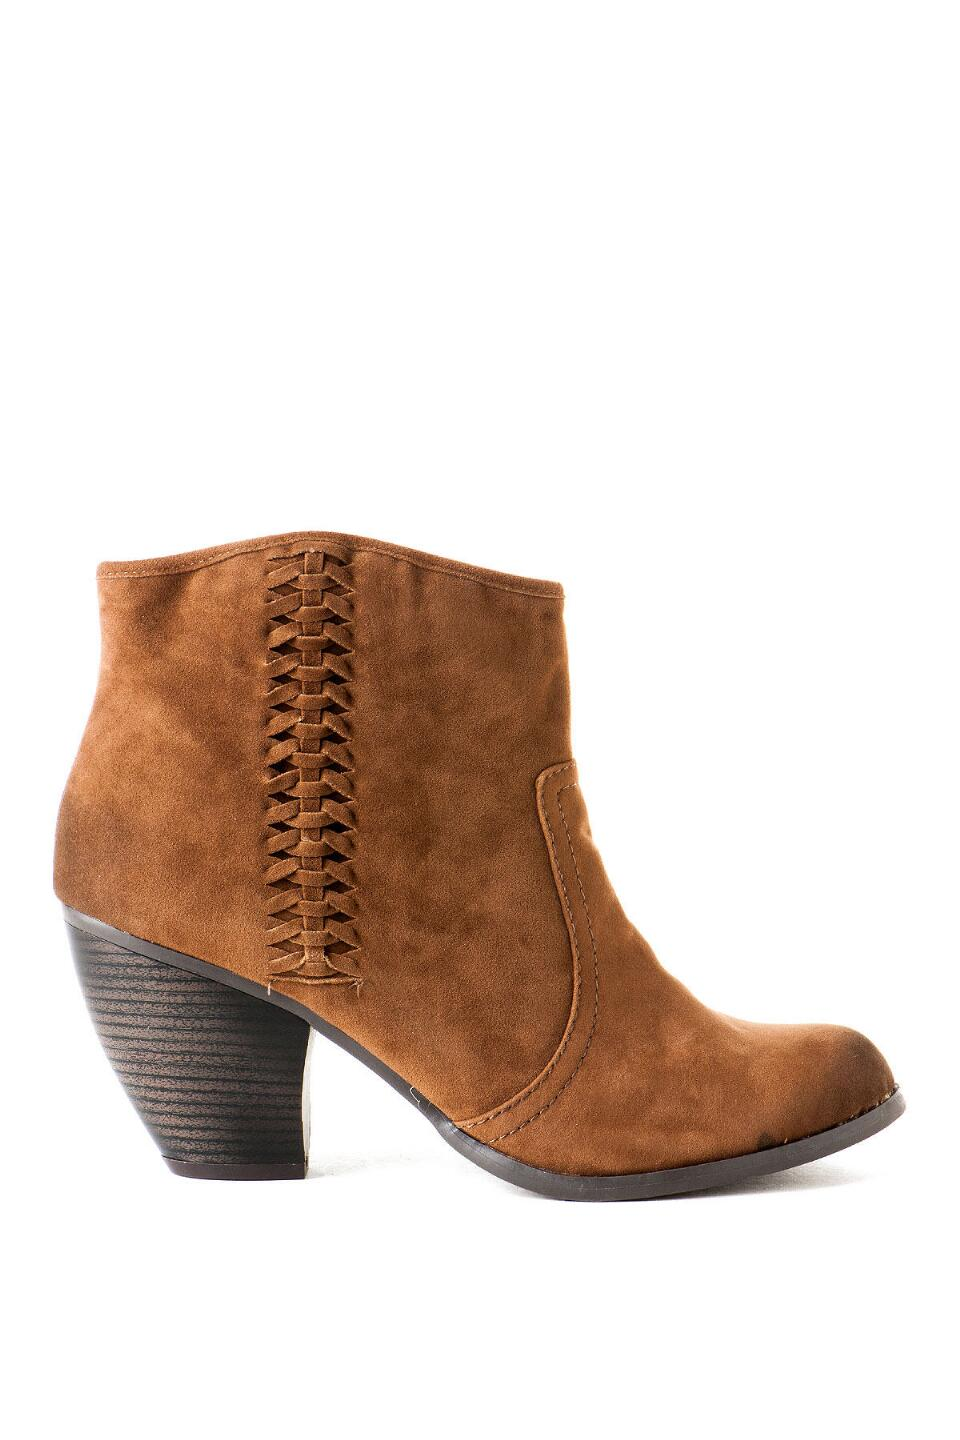 Lotus Braided Bootie-  tan-clright